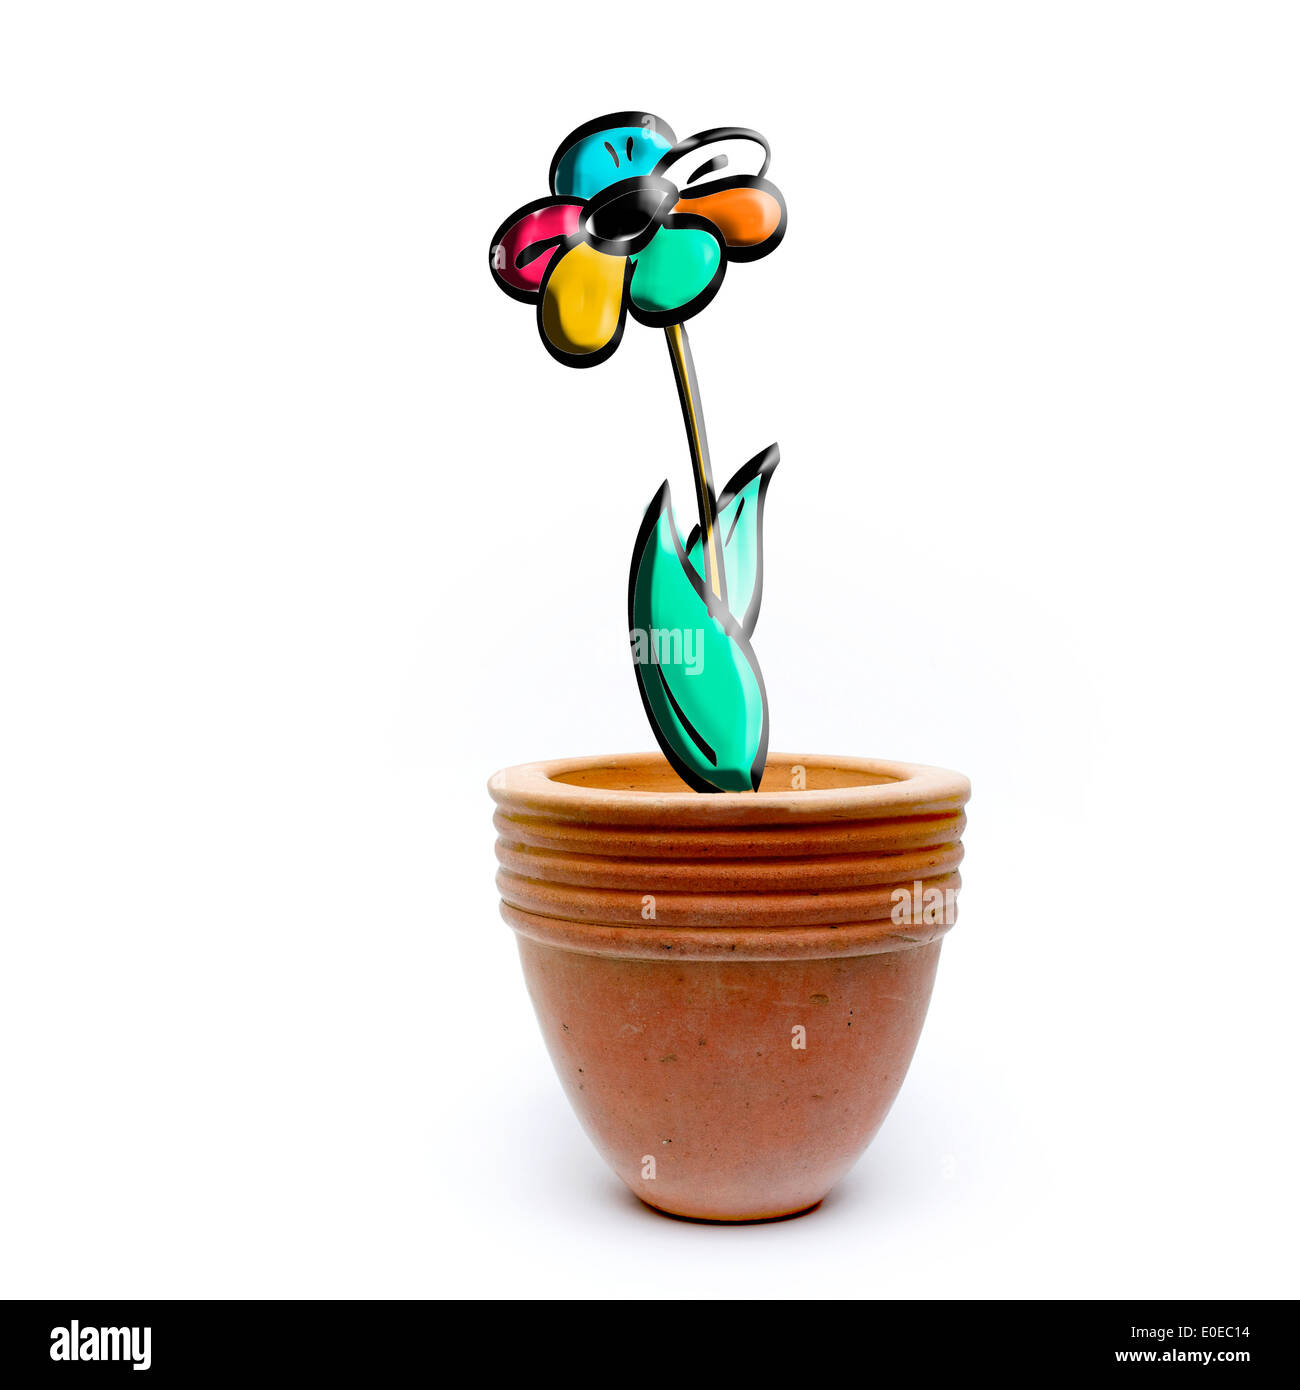 Flower in a plant pot, concept - Stock Image